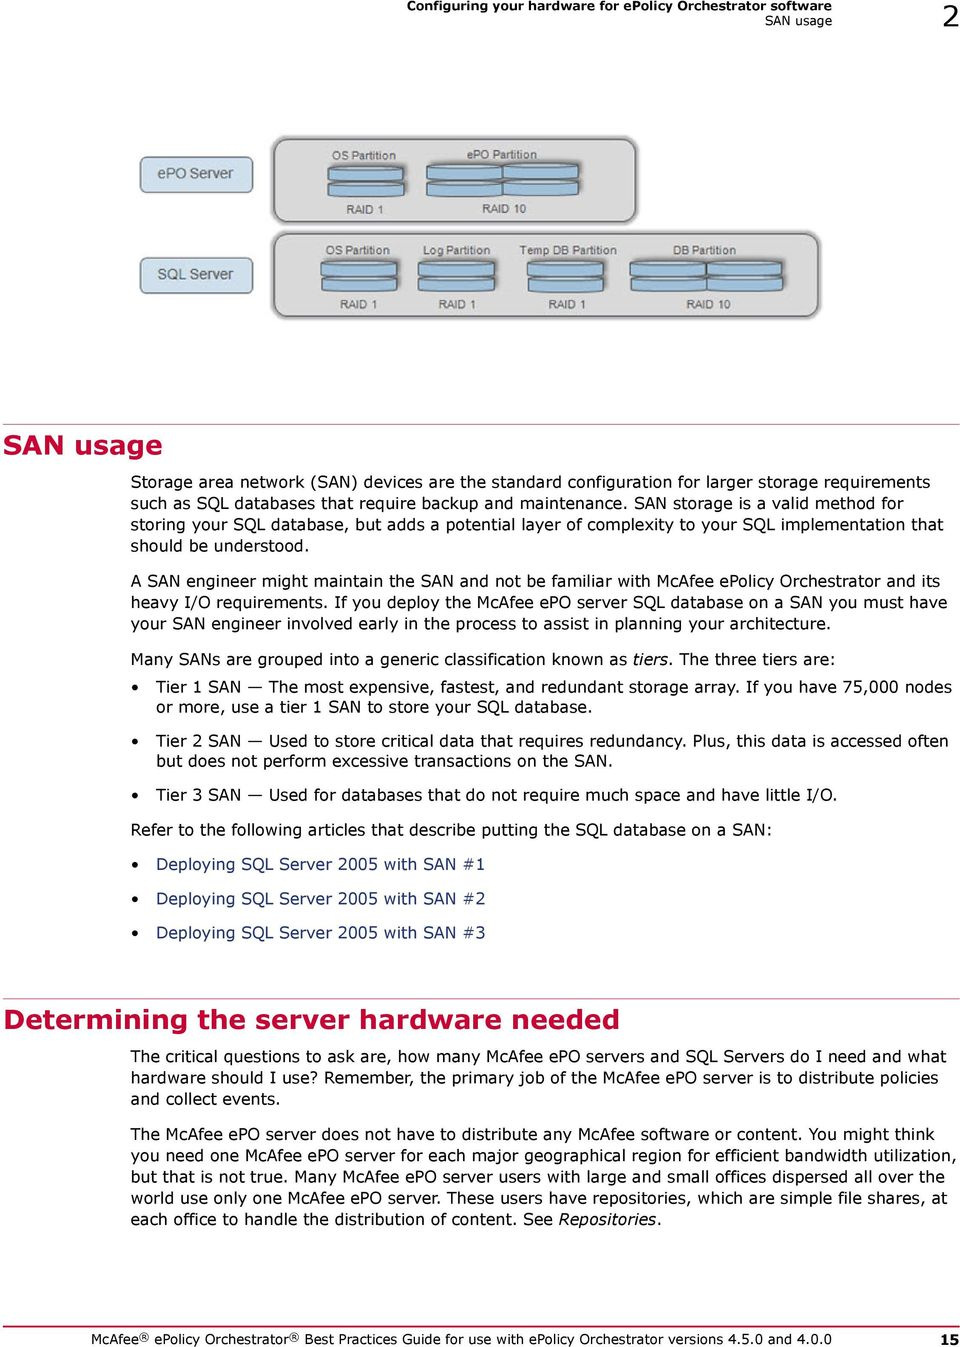 SAN storage is a valid method for storing your SQL database, but adds a potential layer of complexity to your SQL implementation that should be understood.